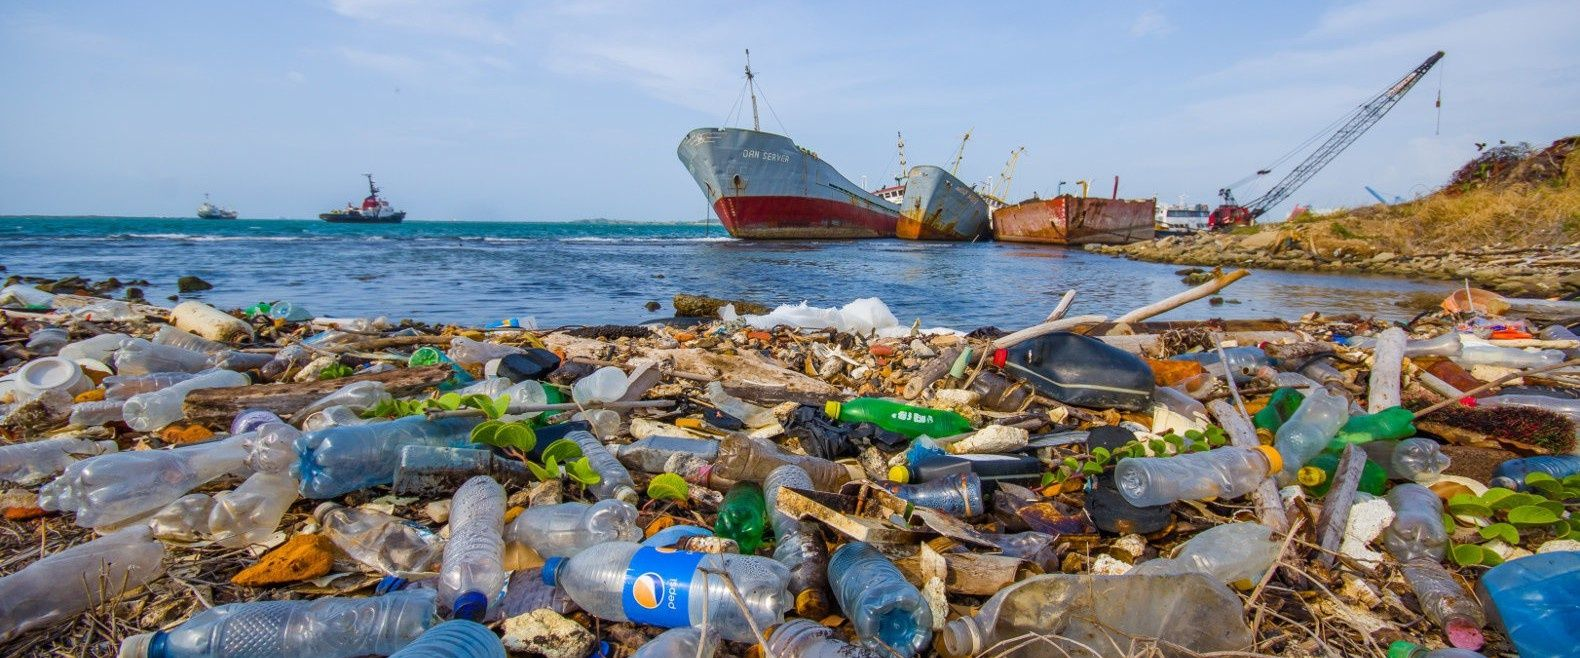 plastic-trash-in-oceans-and-waterways-1580x658